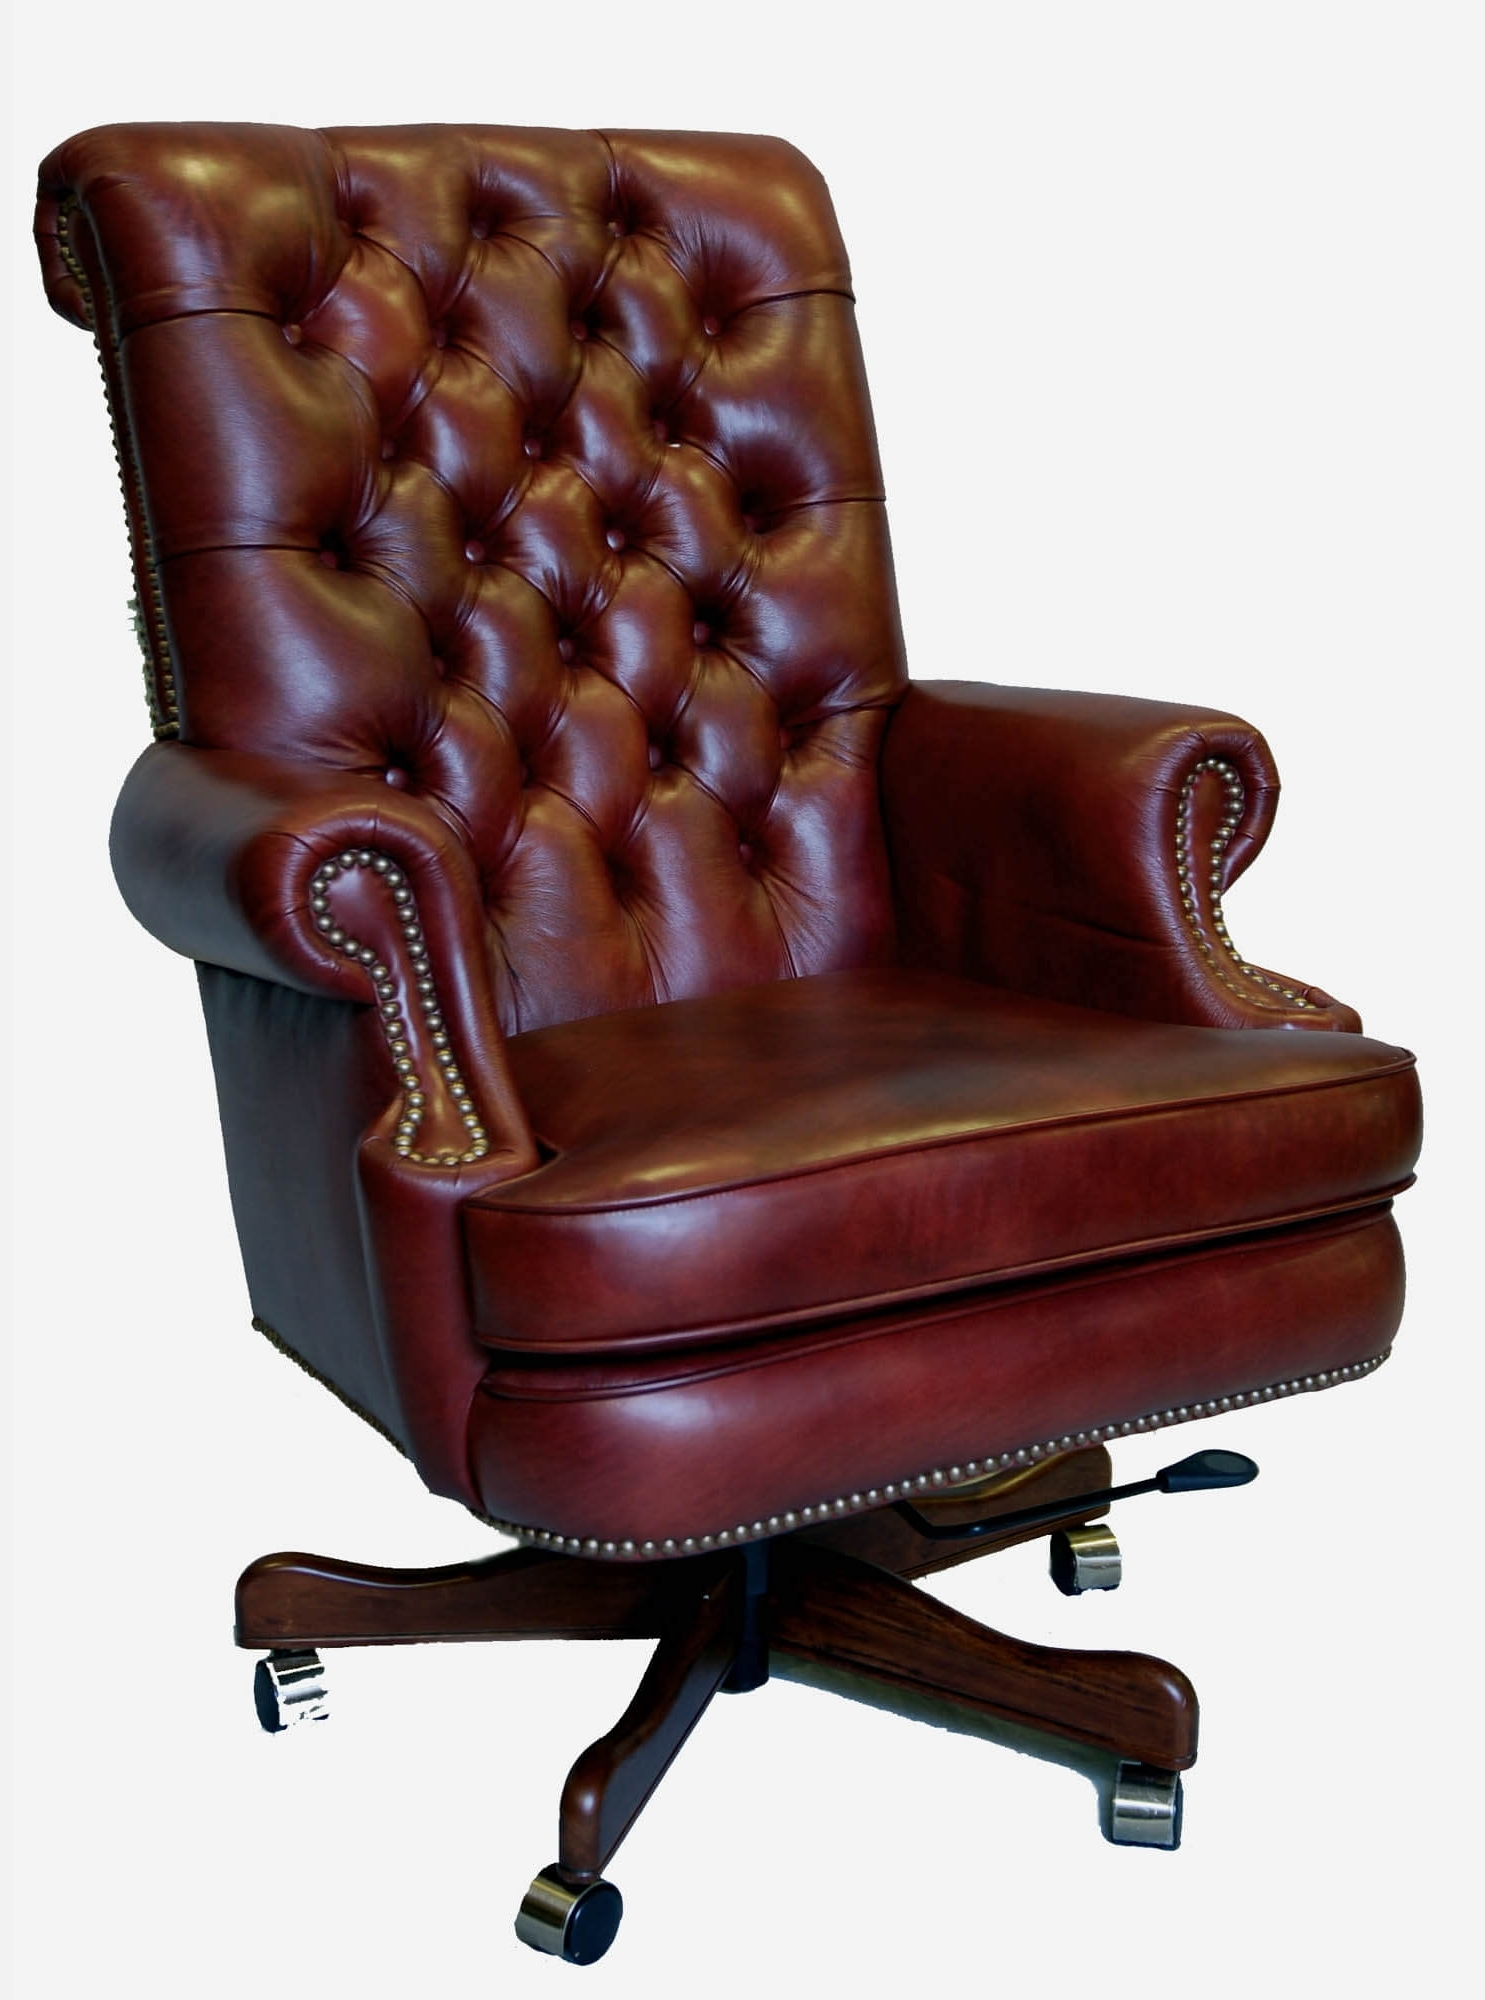 Best And Newest Office Chair Guide & How To Buy A Desk Chair + Top 10 Chairs With Fabric Executive Office Chairs (View 4 of 20)